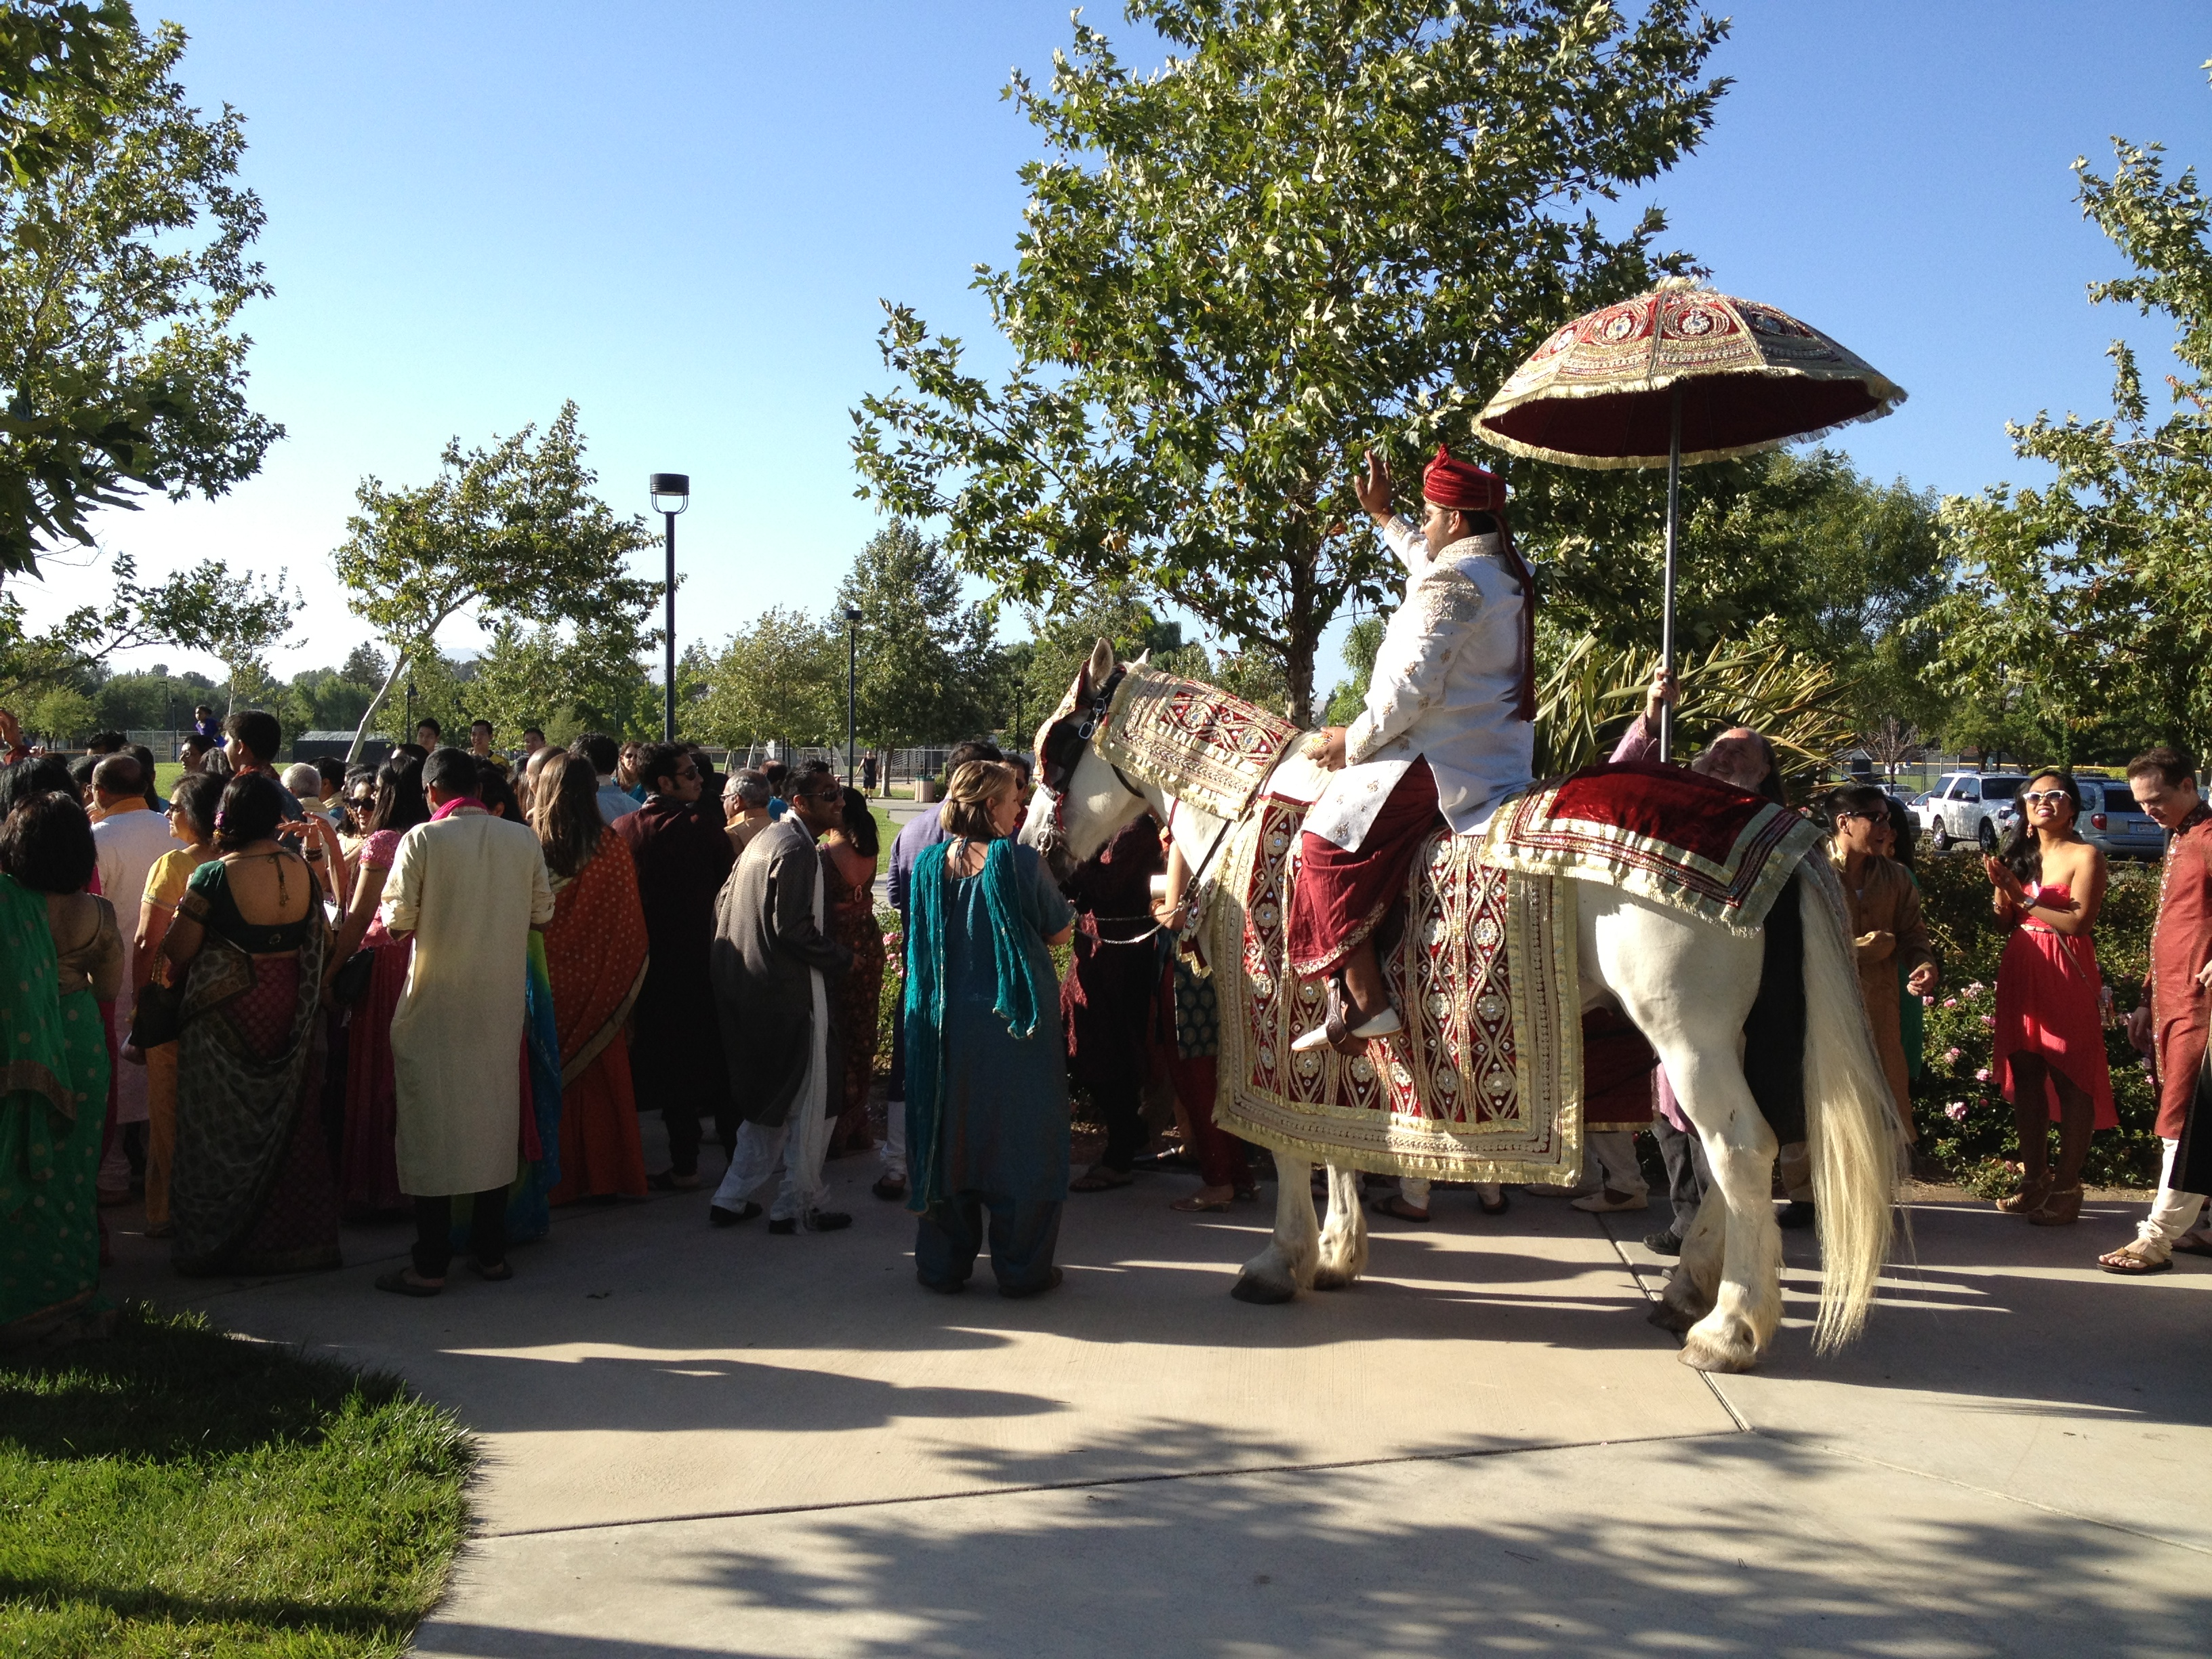 South Asian Wedding, Grooms's Procession -Baraat